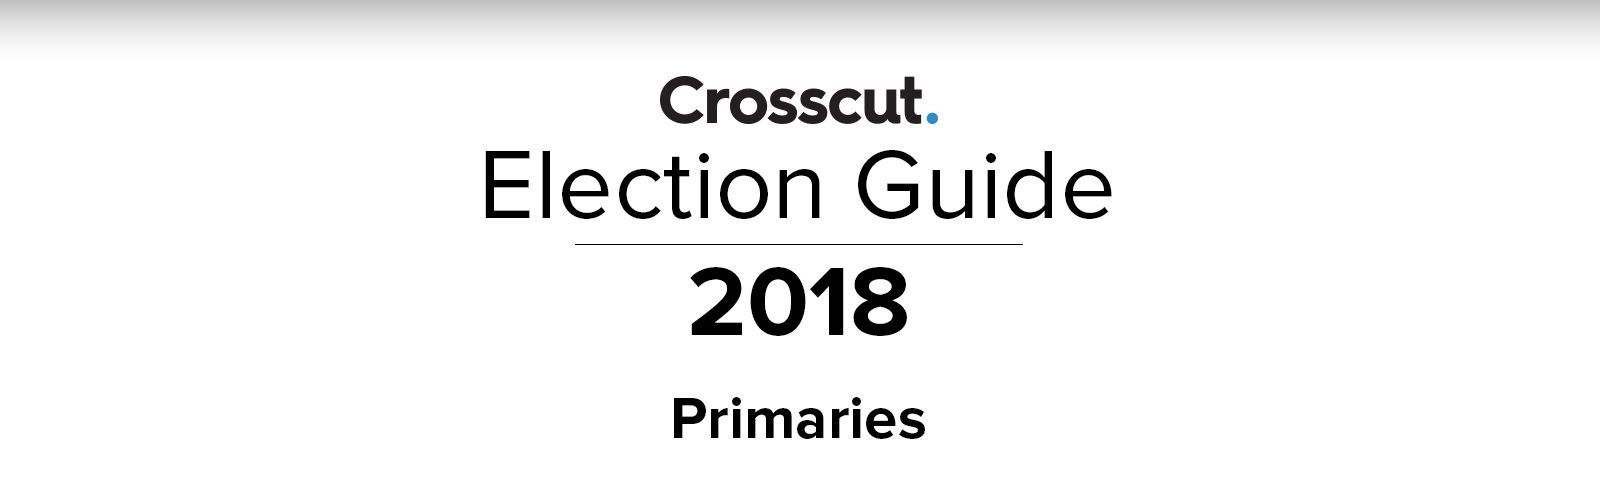 Video voters' guide november 6, 2018 general election.